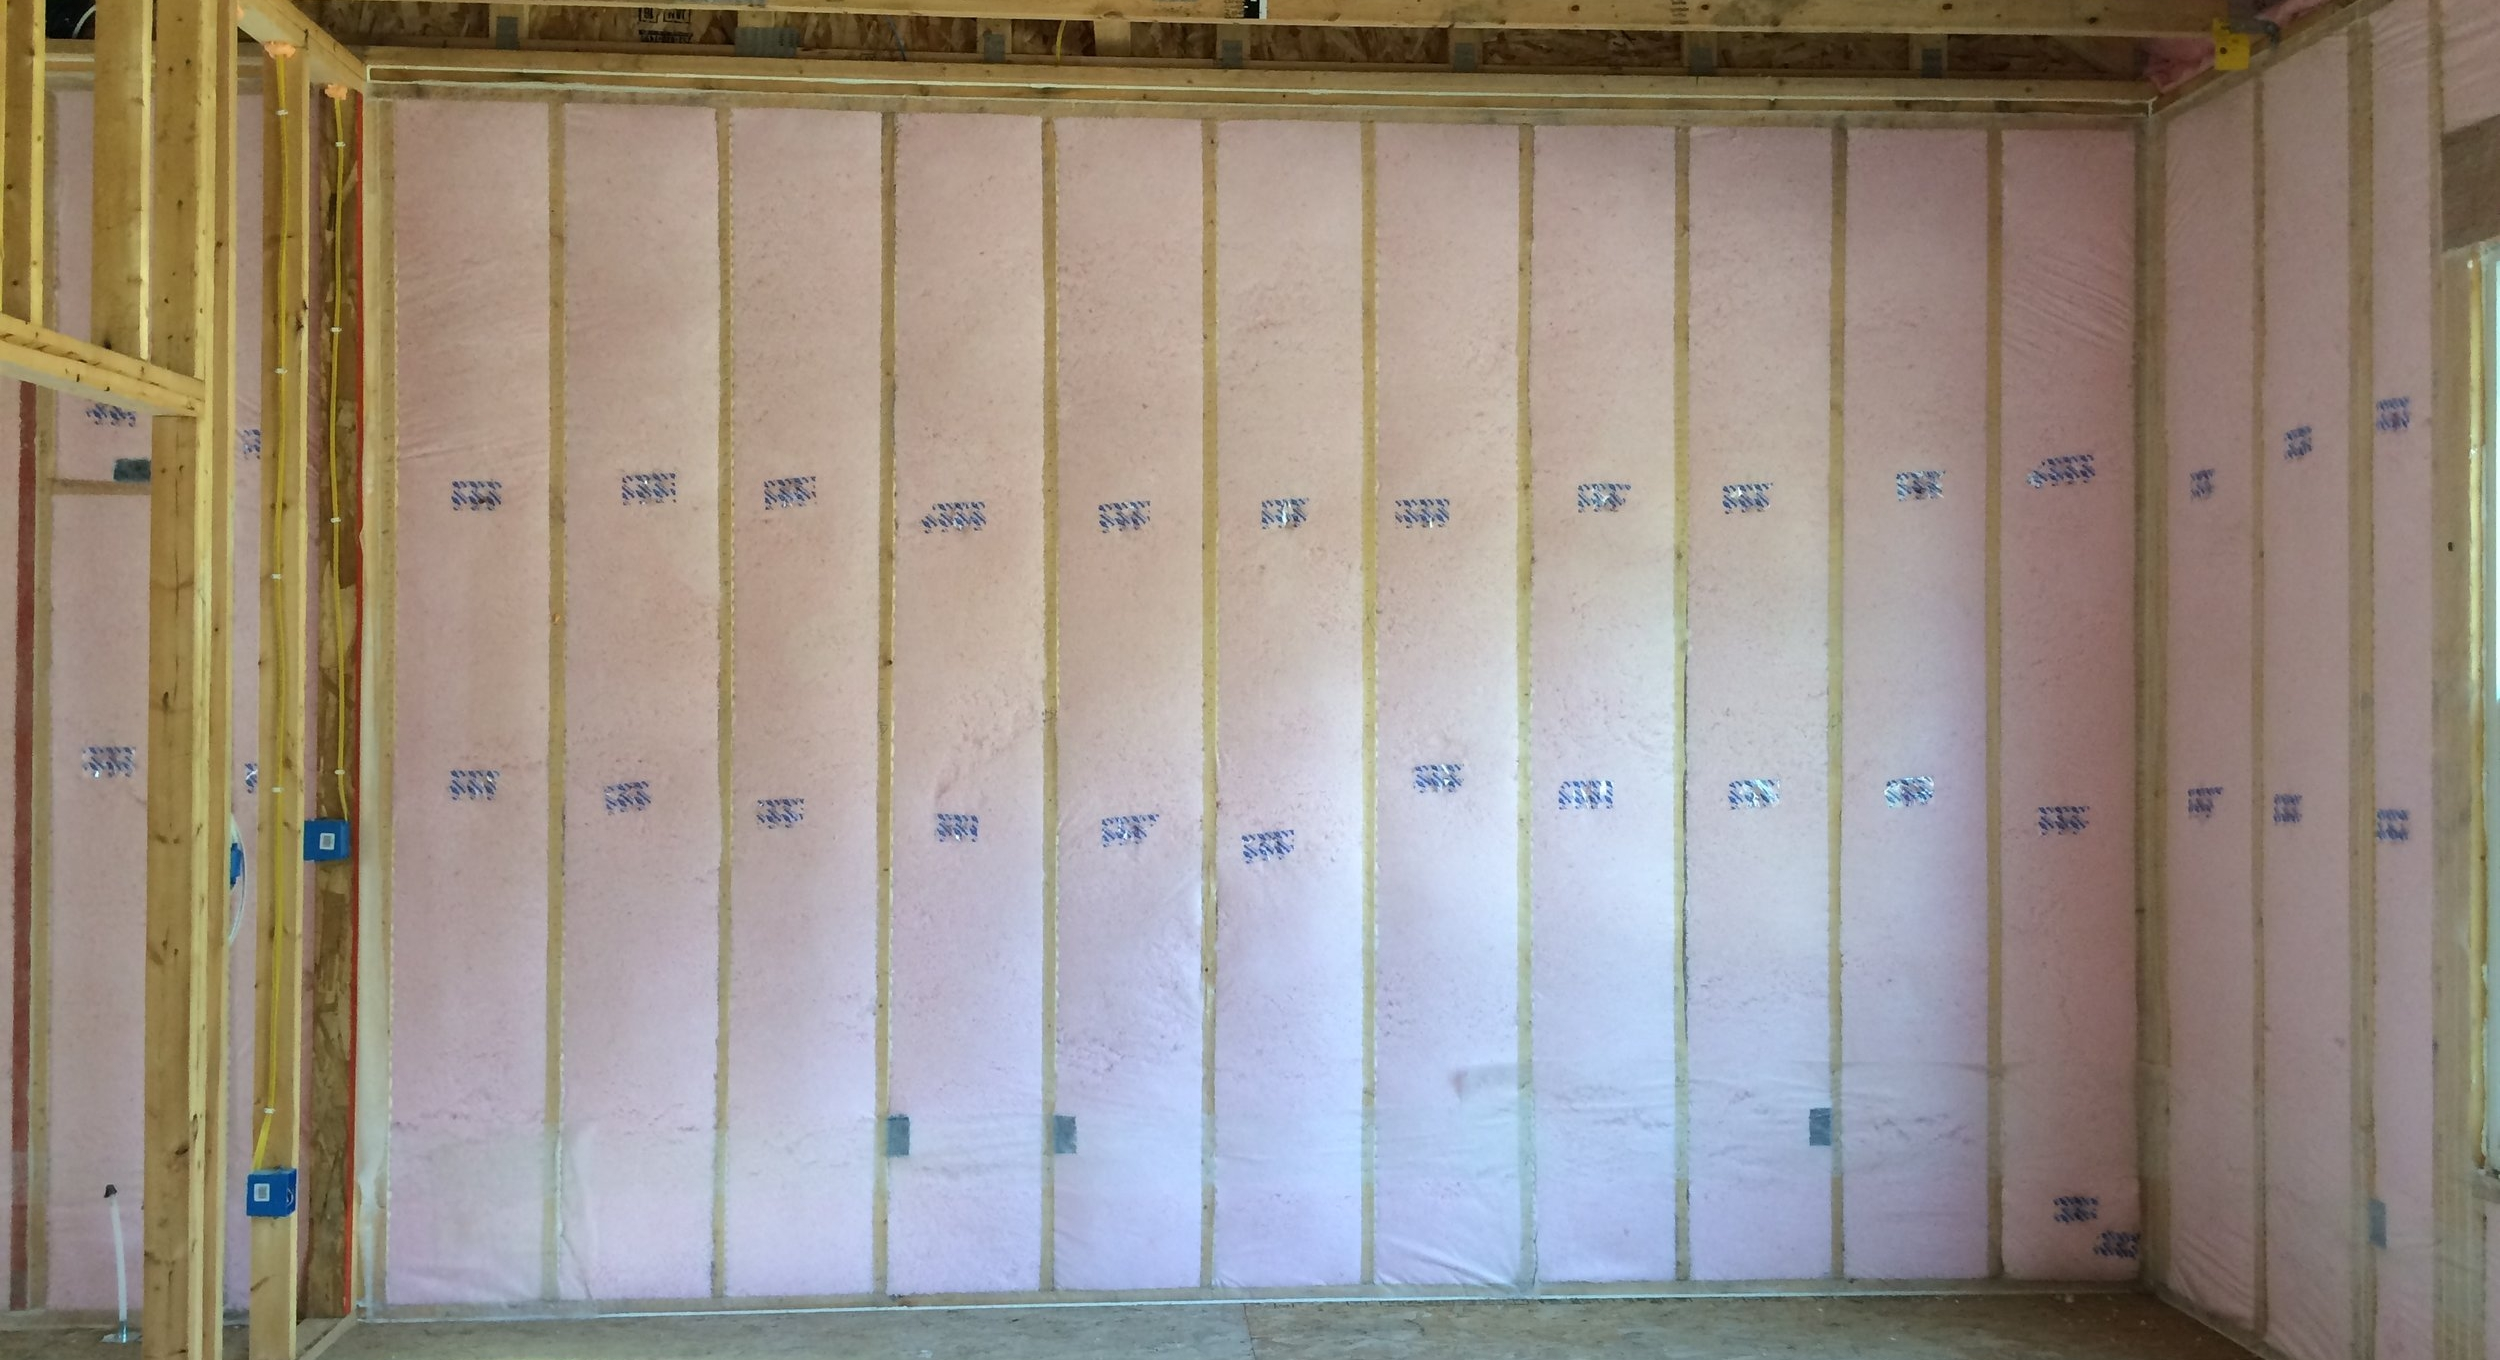 Blown-in insulation - Wall cavities are blown-in allowing no air pockets. This process provides a tight wall cavity with no voids.